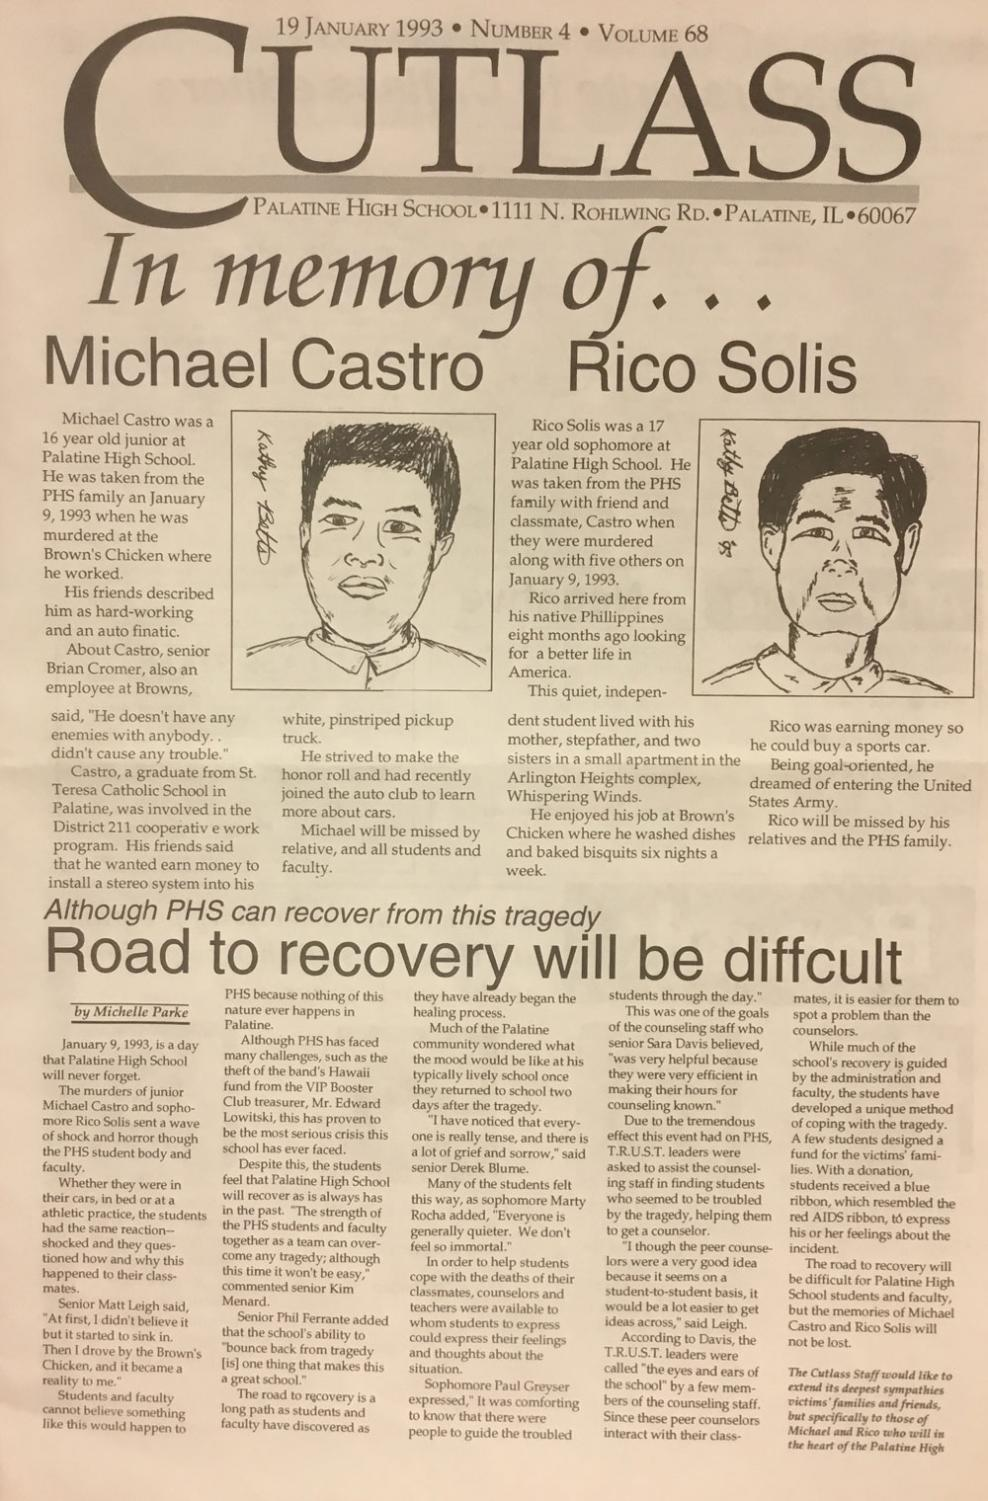 Front page from the Jan 1993 edition of the Cutlass covering the Brown's Chicken massacre.